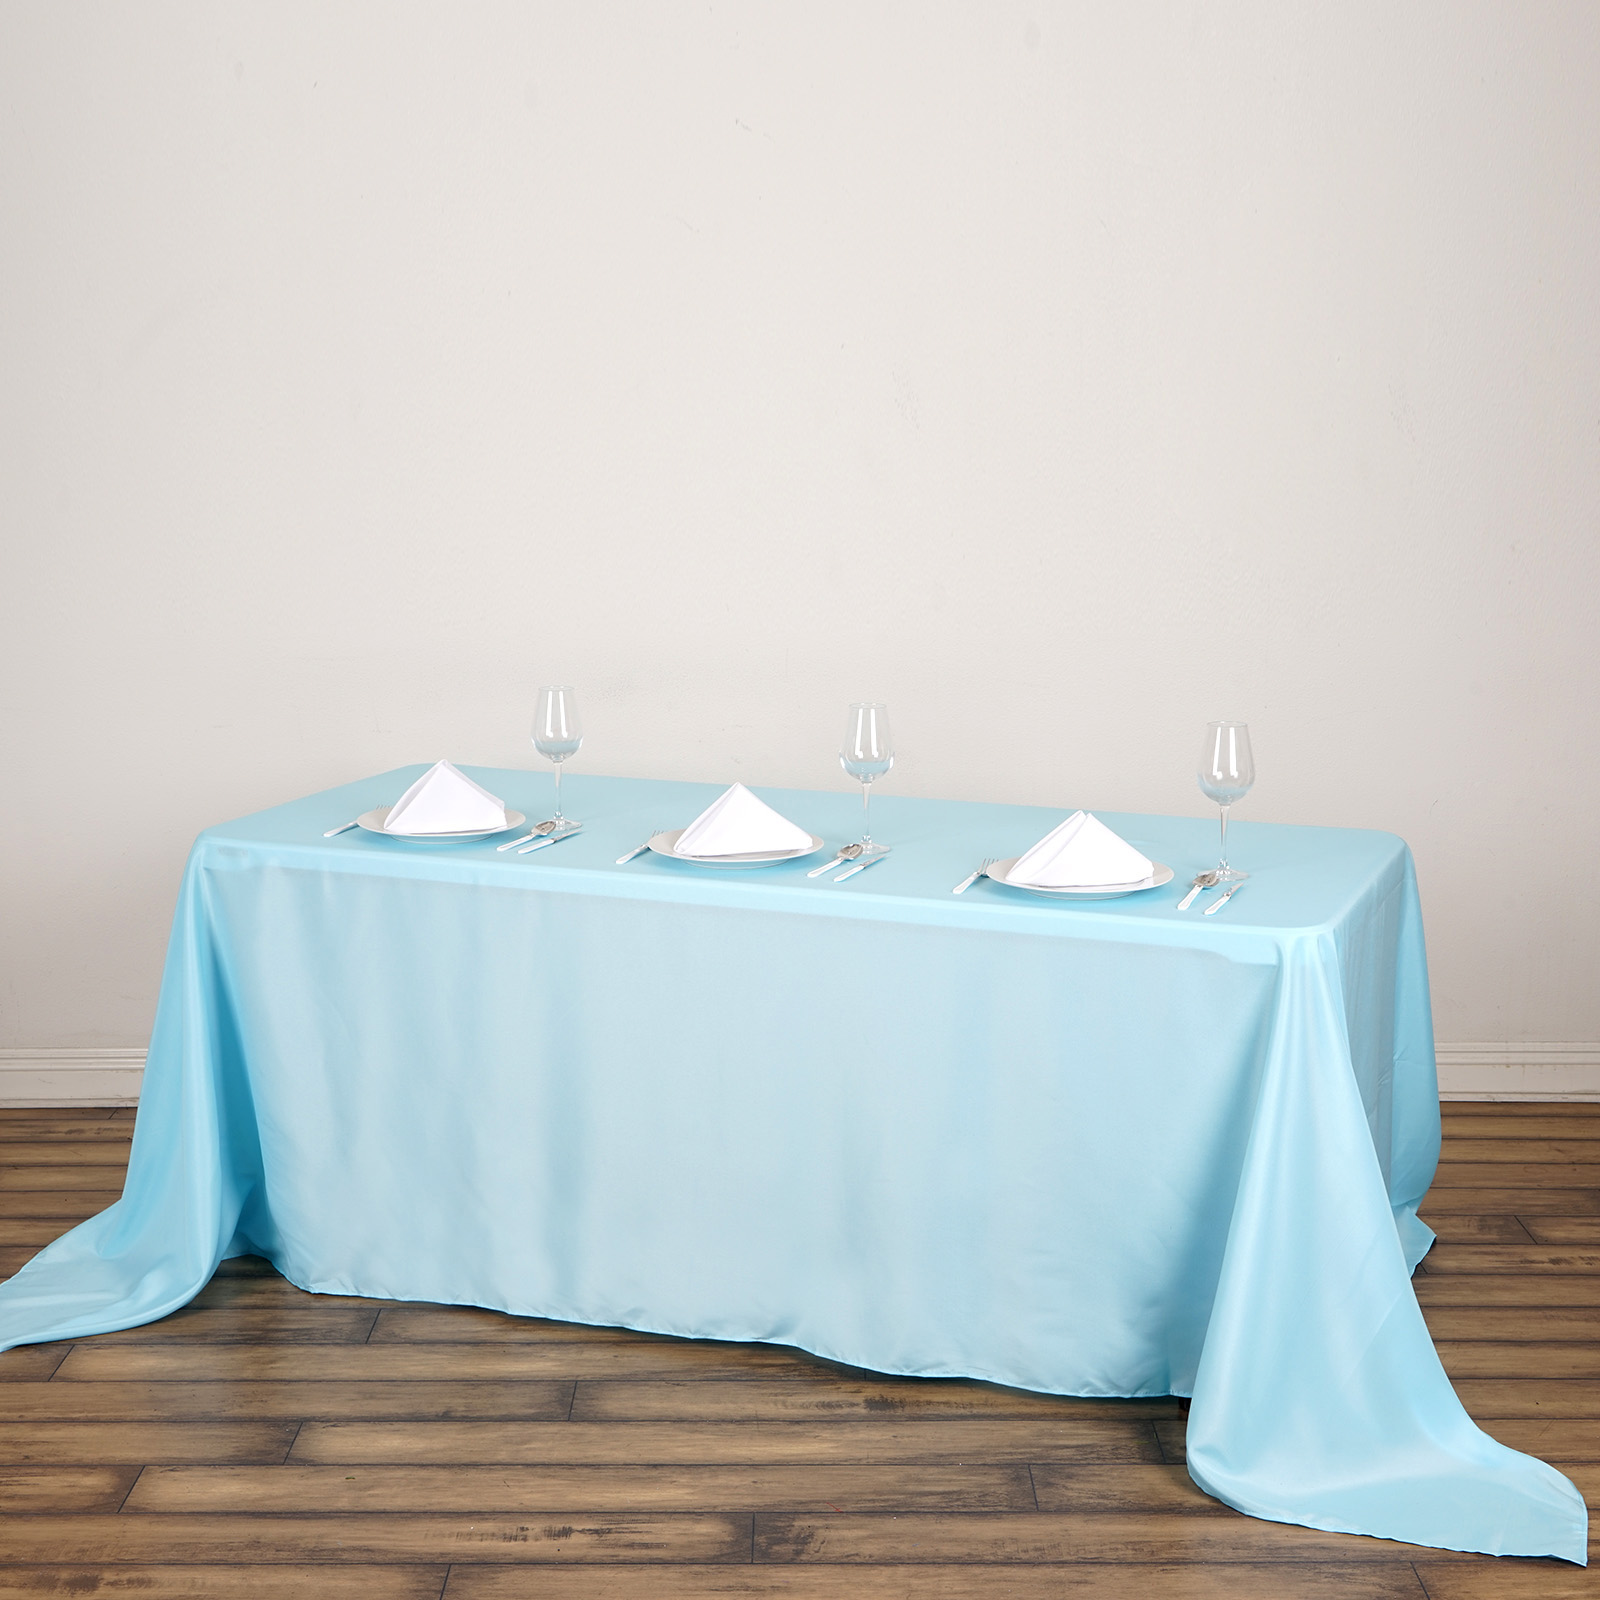 """BalsaCircle 90"""" x 132"""" Rectangular Polyester Tablecloth for Party Wedding Reception Catering Dining Home Table Linens"""